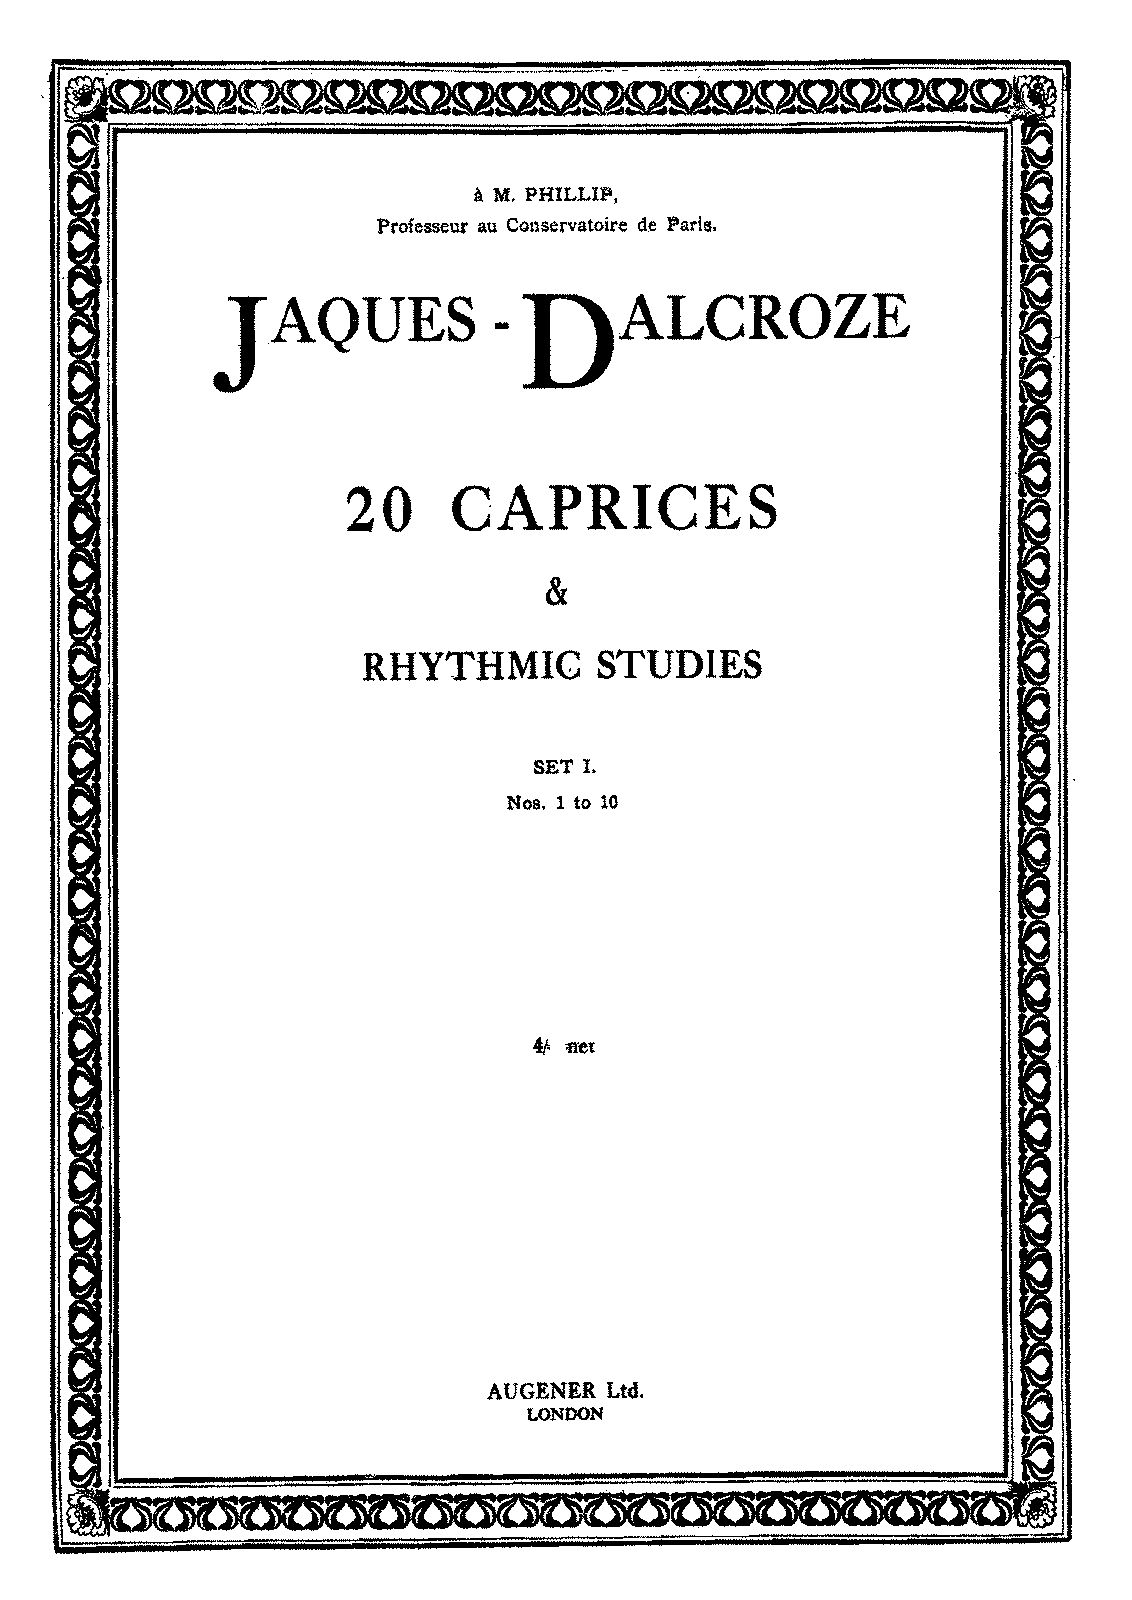 PMLP592176-Jaques-Dalcroze - 20 Caprices and Rhythmic Studies - Cah.1.pdf